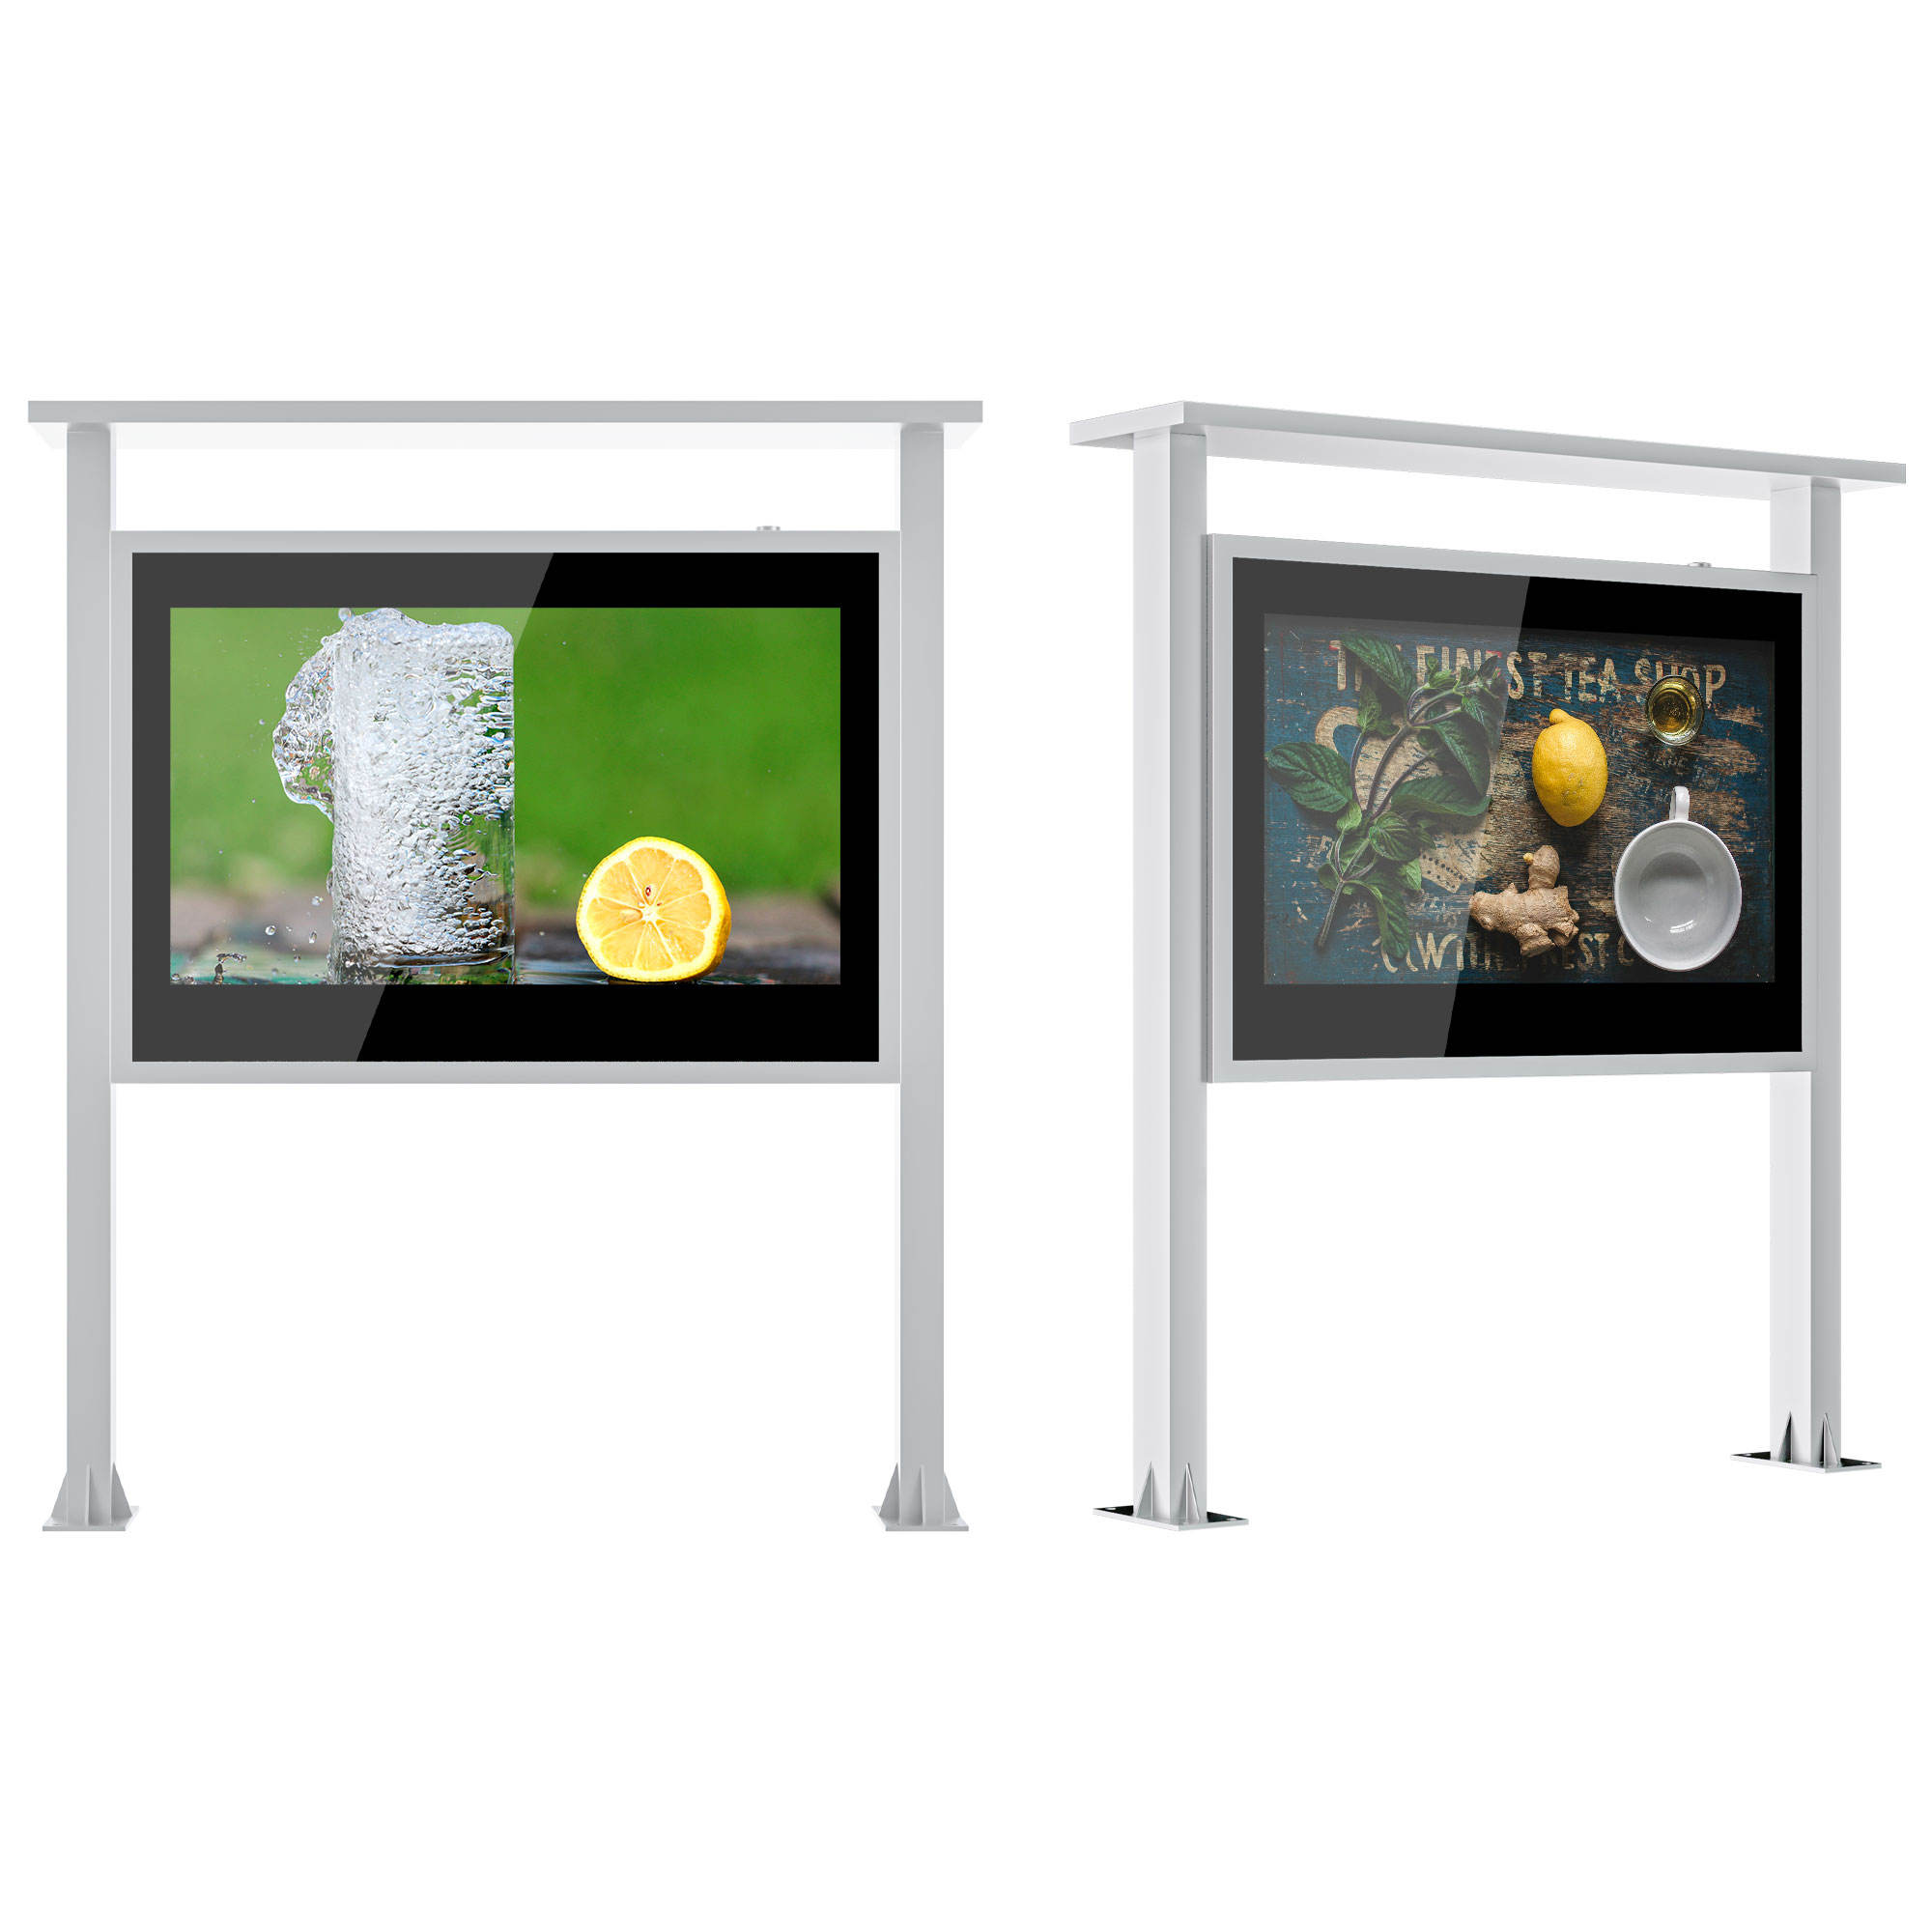 Full hd touchscreen <span class=keywords><strong>impermeabile</strong></span> outdoor <span class=keywords><strong>tv</strong></span> monitor